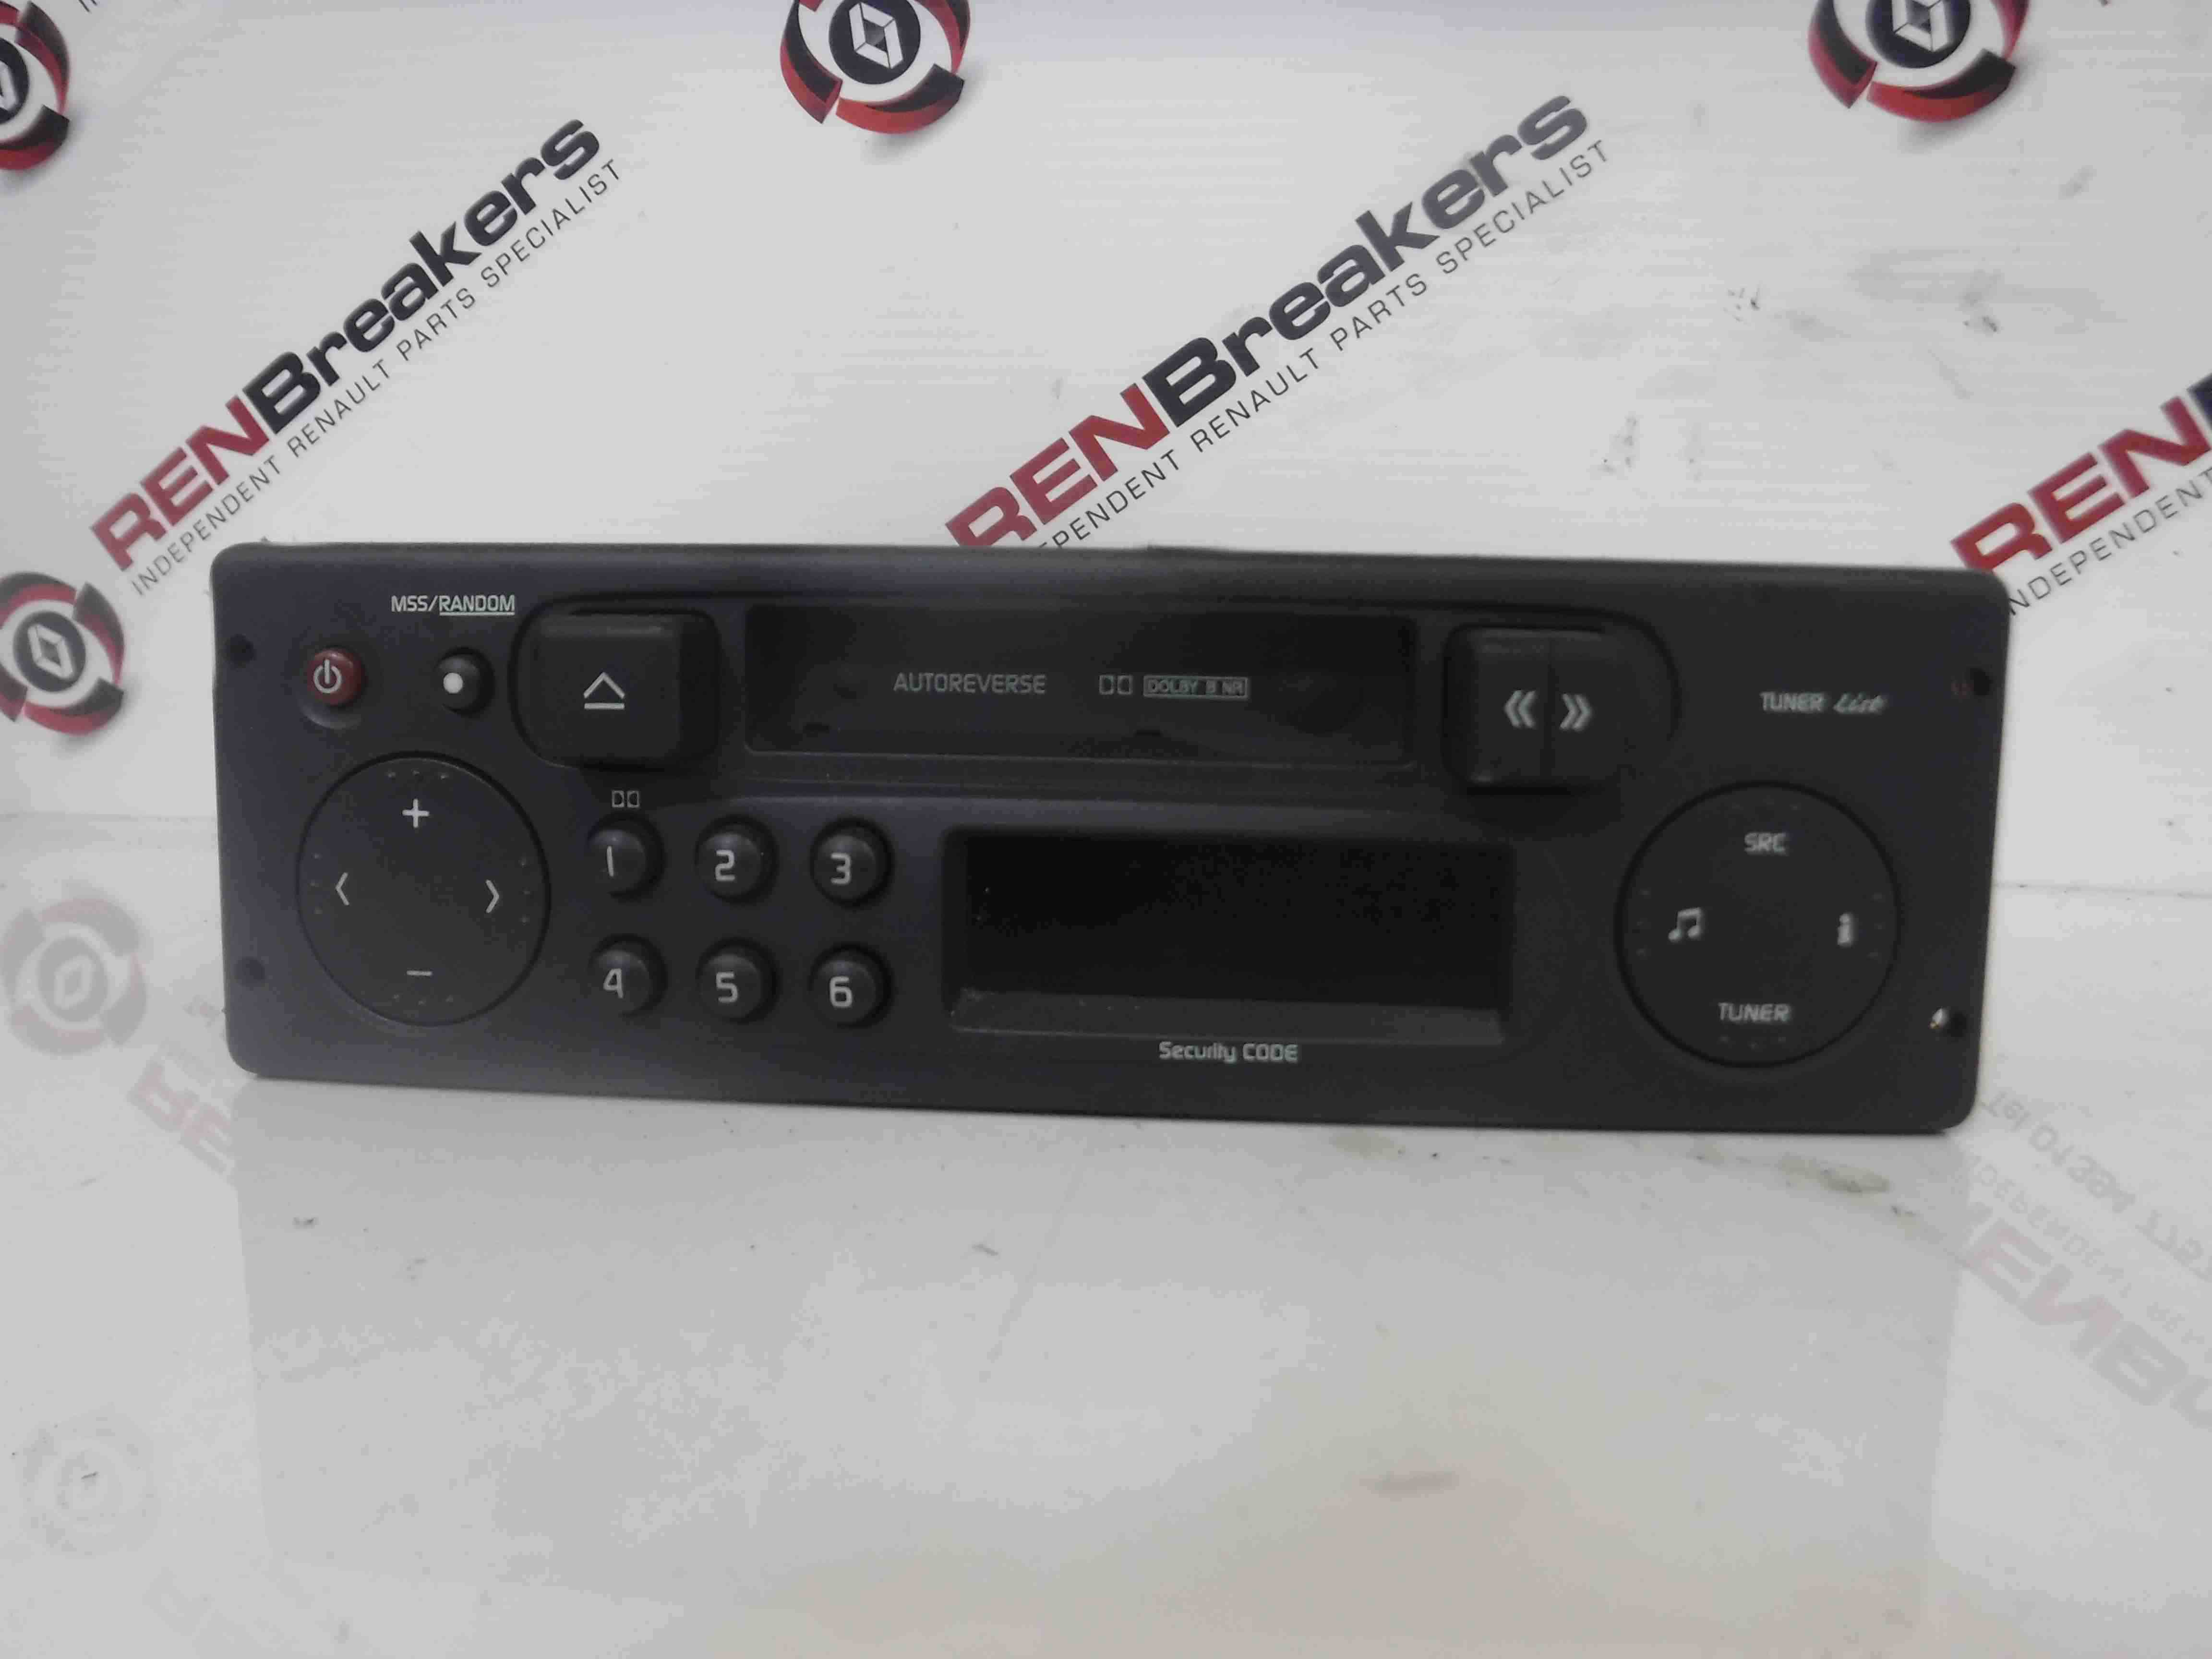 renault clio mk2 2001 2006 radio tape casette player code 8200113800 store renault. Black Bedroom Furniture Sets. Home Design Ideas